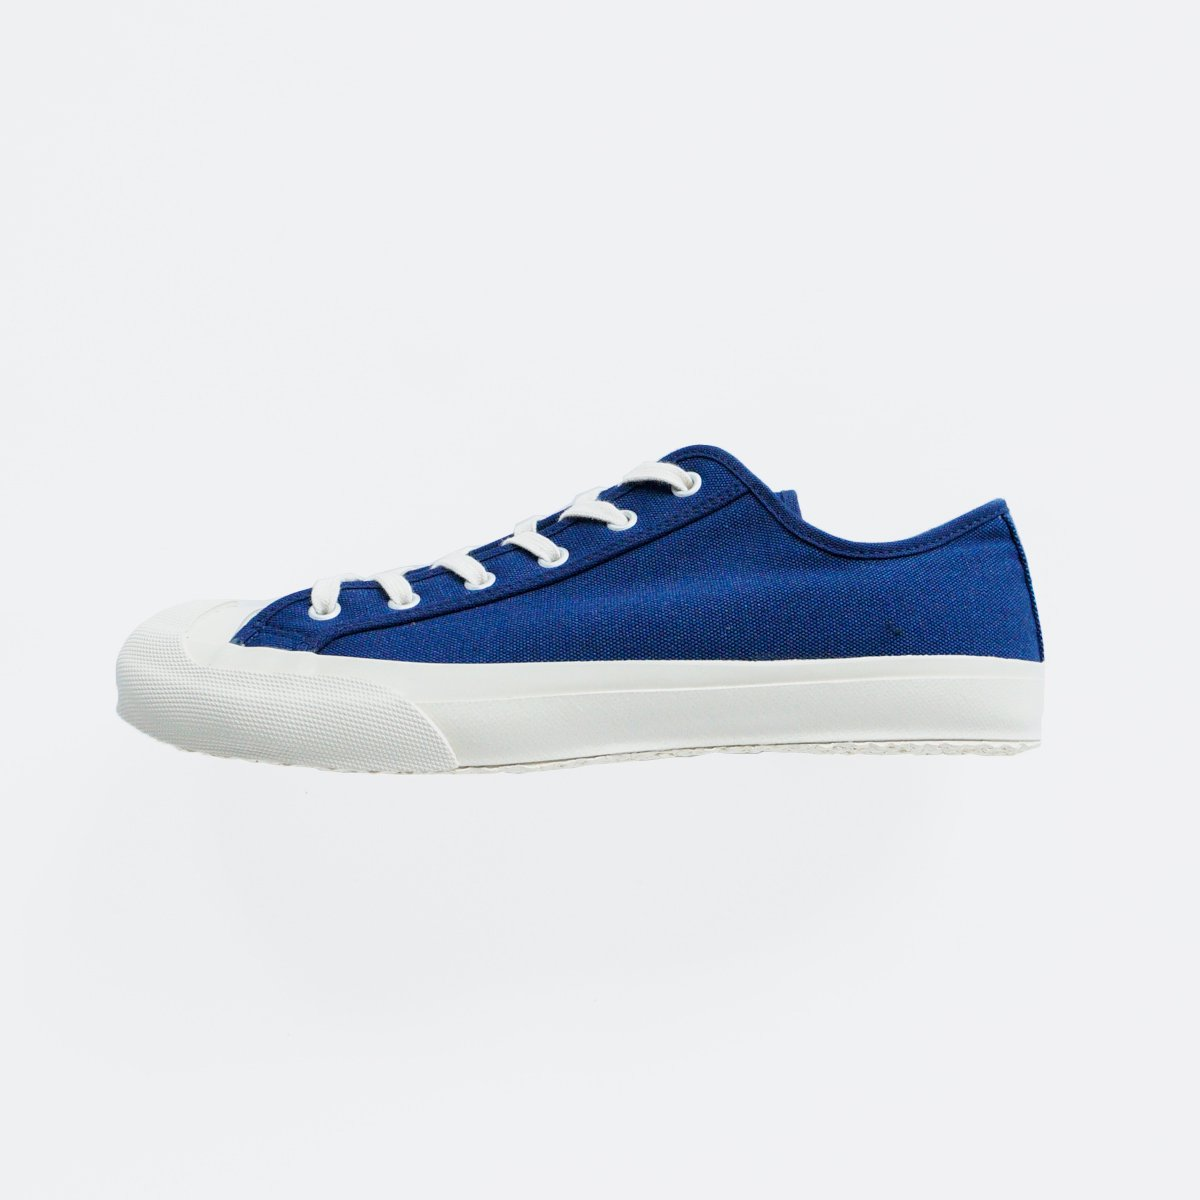 DOEK CANVAS SNEAKER 'COURT' (NAVY)